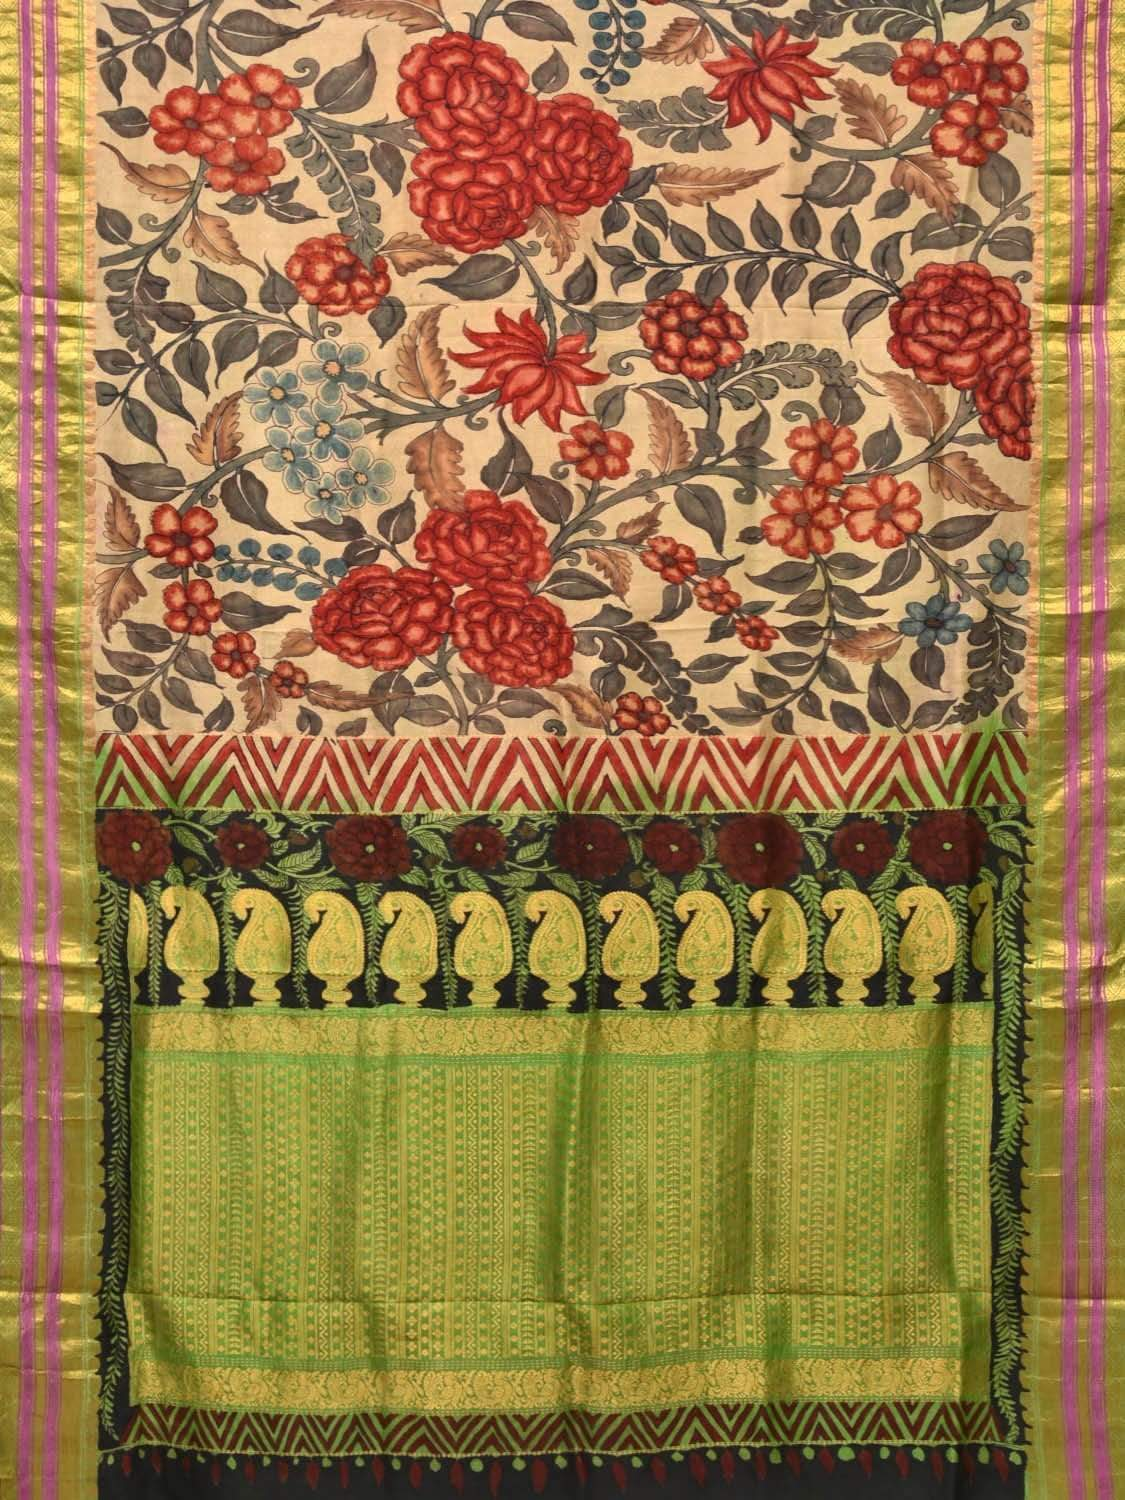 Cream and Green Kalamkari Hand Painted Gadwal Silk Handloom Saree with All Over Flowers Design KL0211